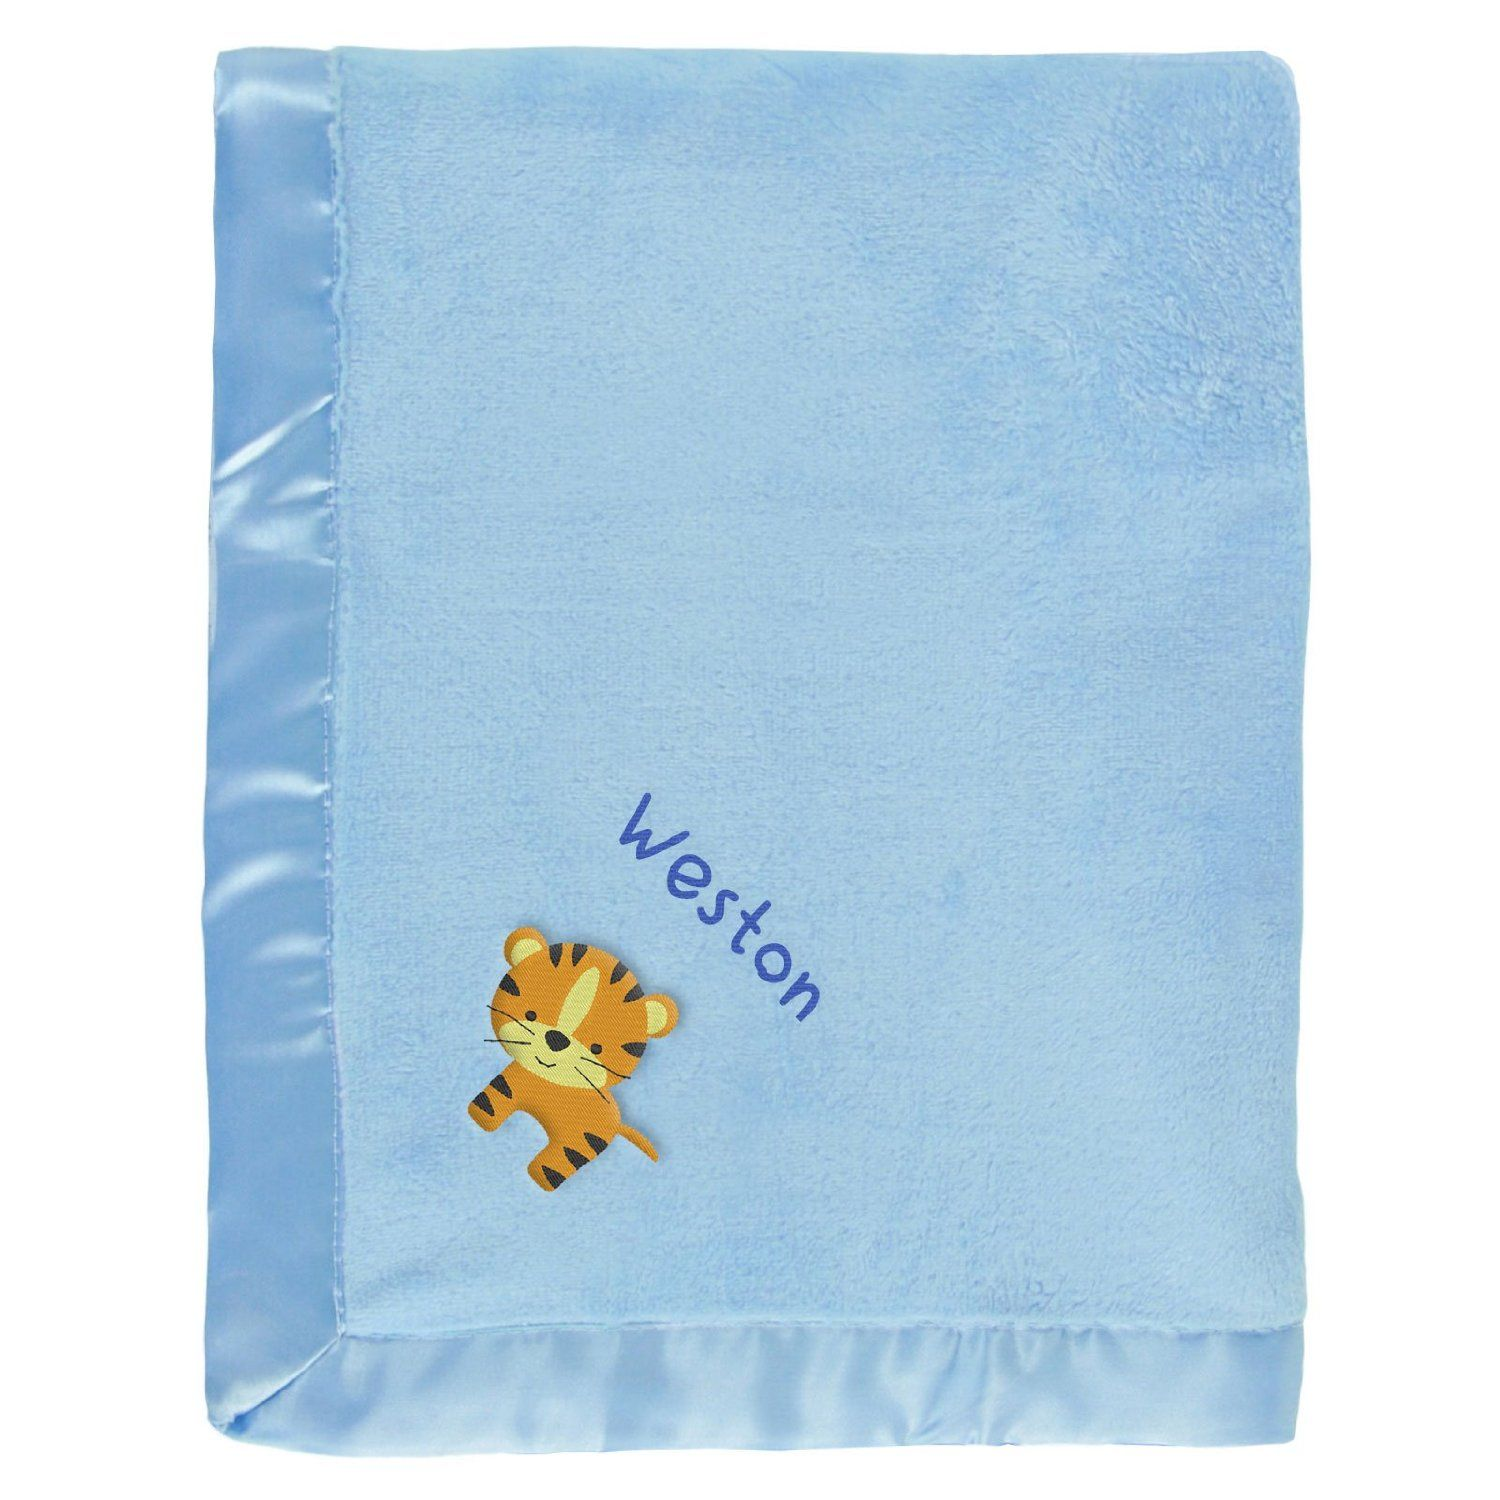 #Weston baby boy blanket in blue with a  little tiger. The name Weston is personalized with unique embroidery in a custom design, perfect as a newborn #baby shower gift.  https://www.babyblankets.com/use/crib/blue-baby-blanket?utm_source=pinterest&utm_medium=pin&utm_campaign=boy_name